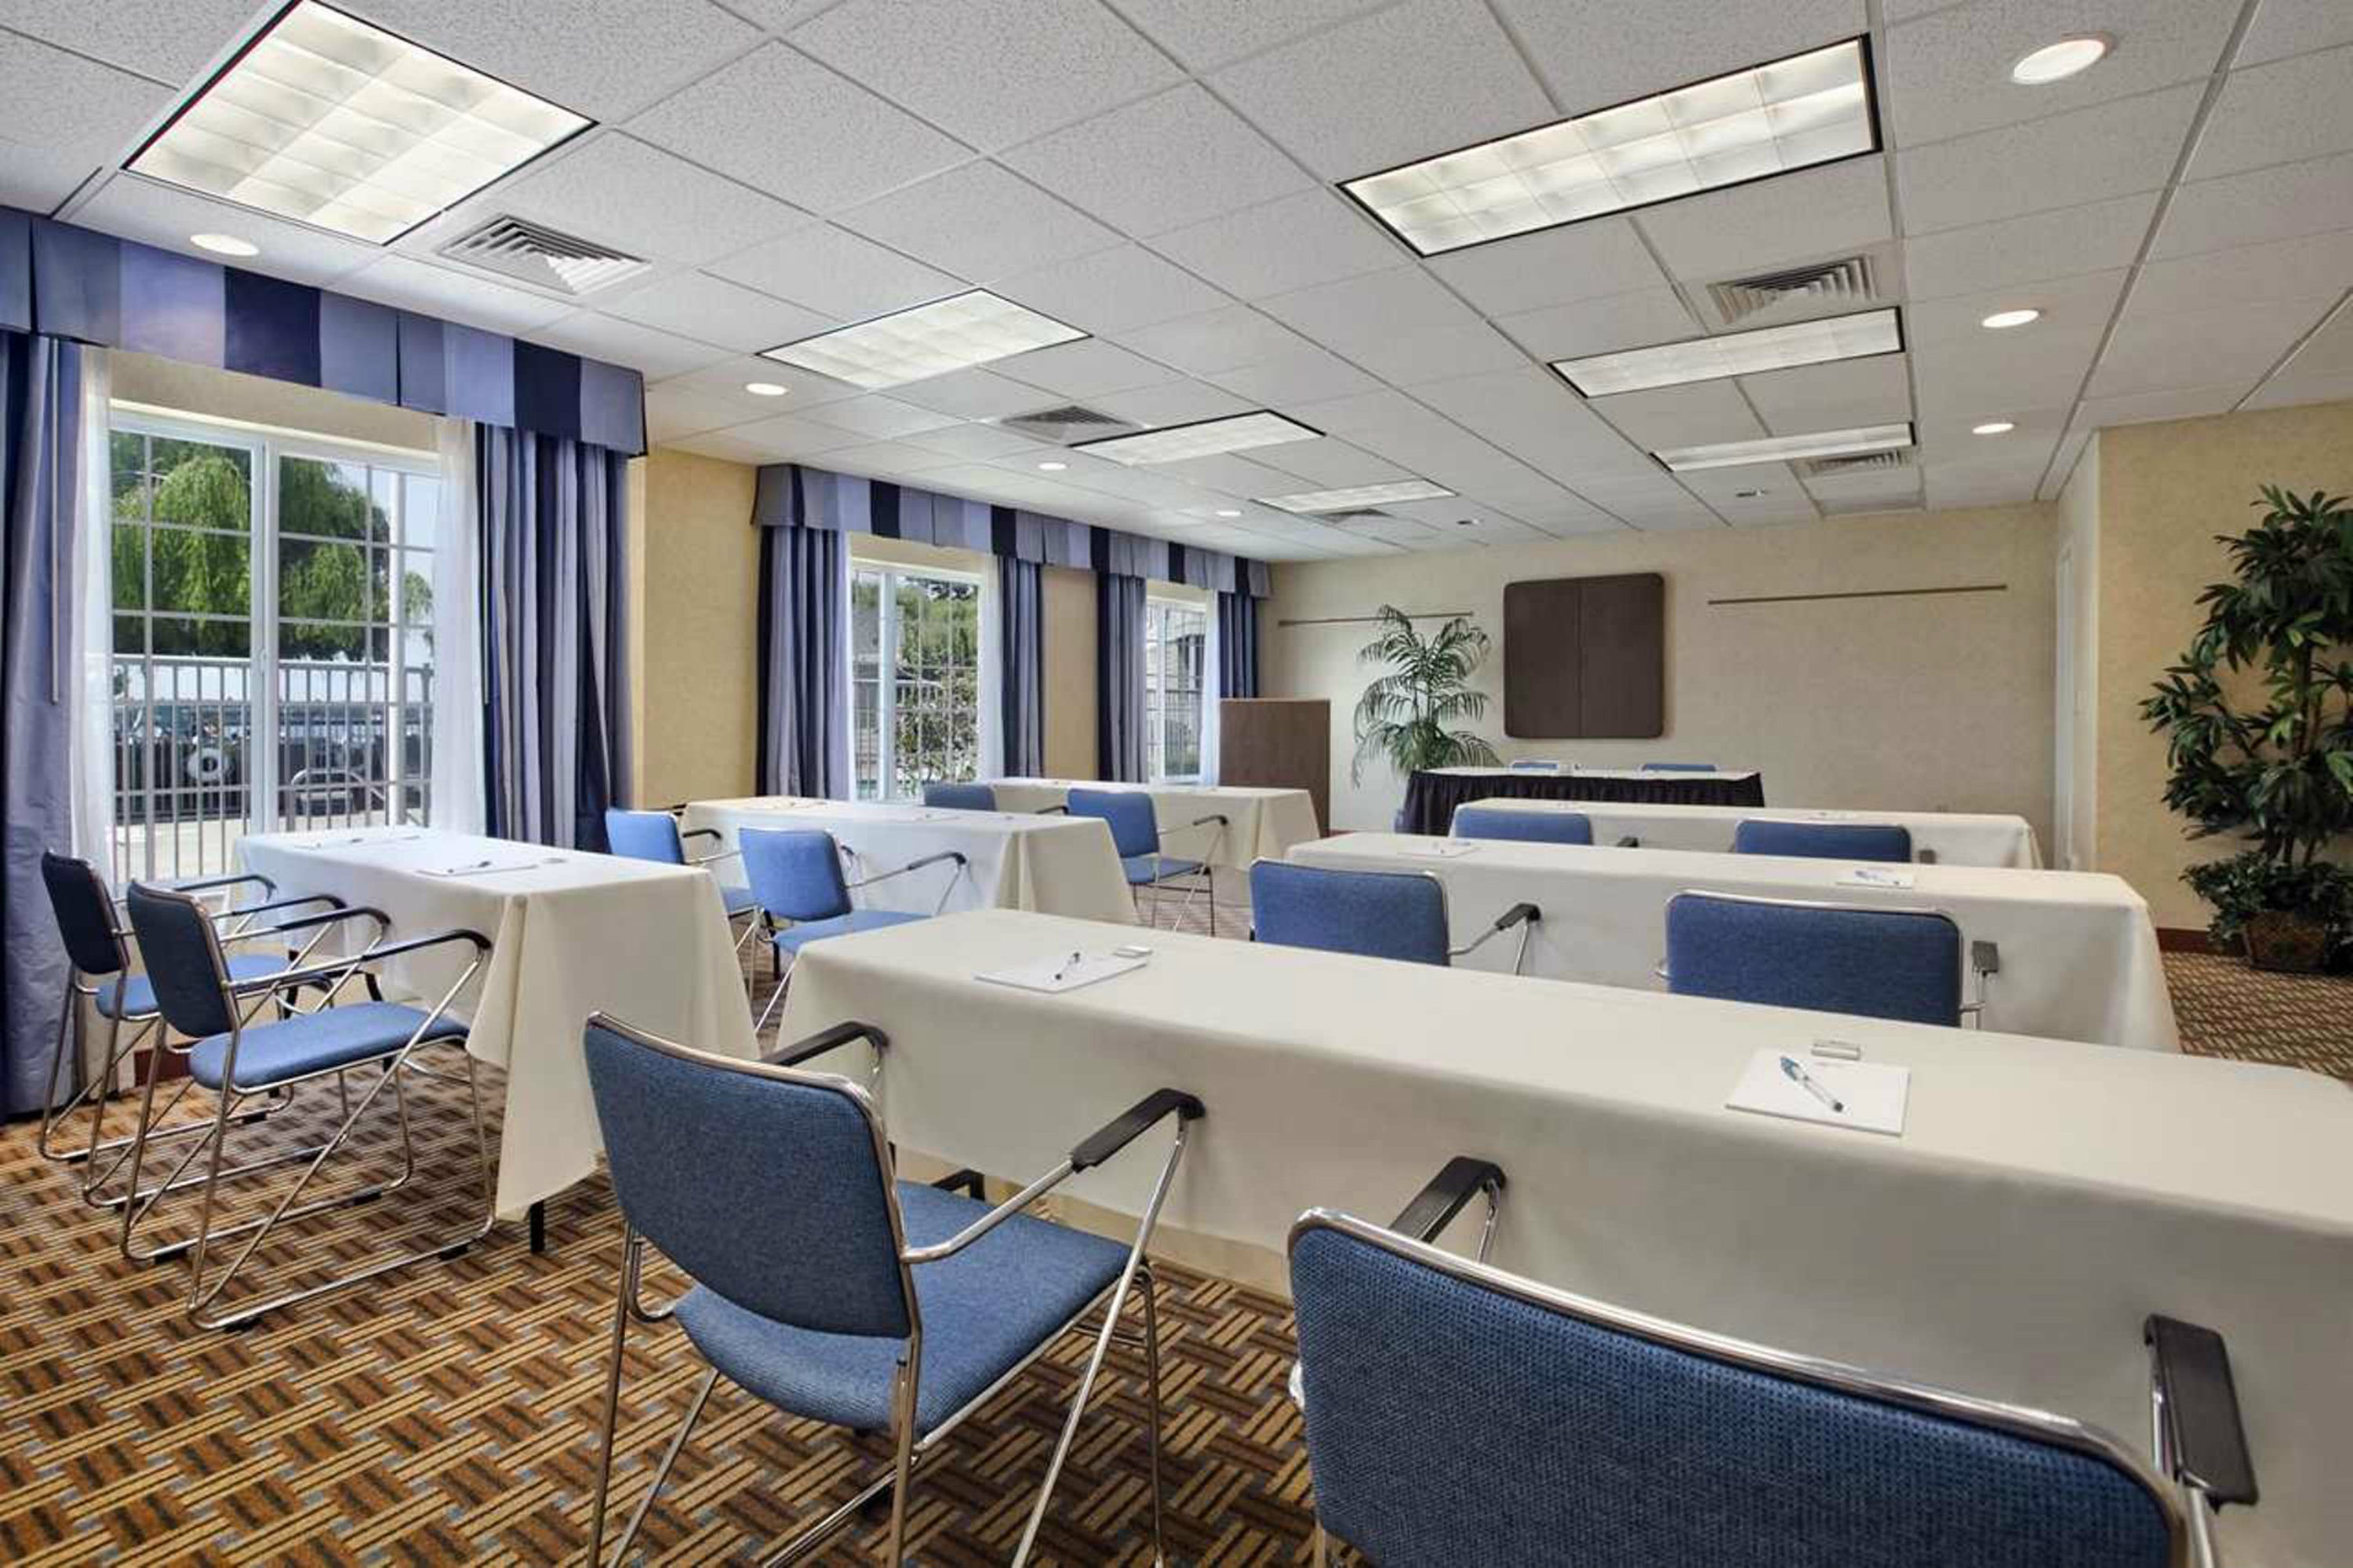 Homewood Suites At The Waterfront: Homewood Suites By Hilton Oakland-Waterfront In Oakland